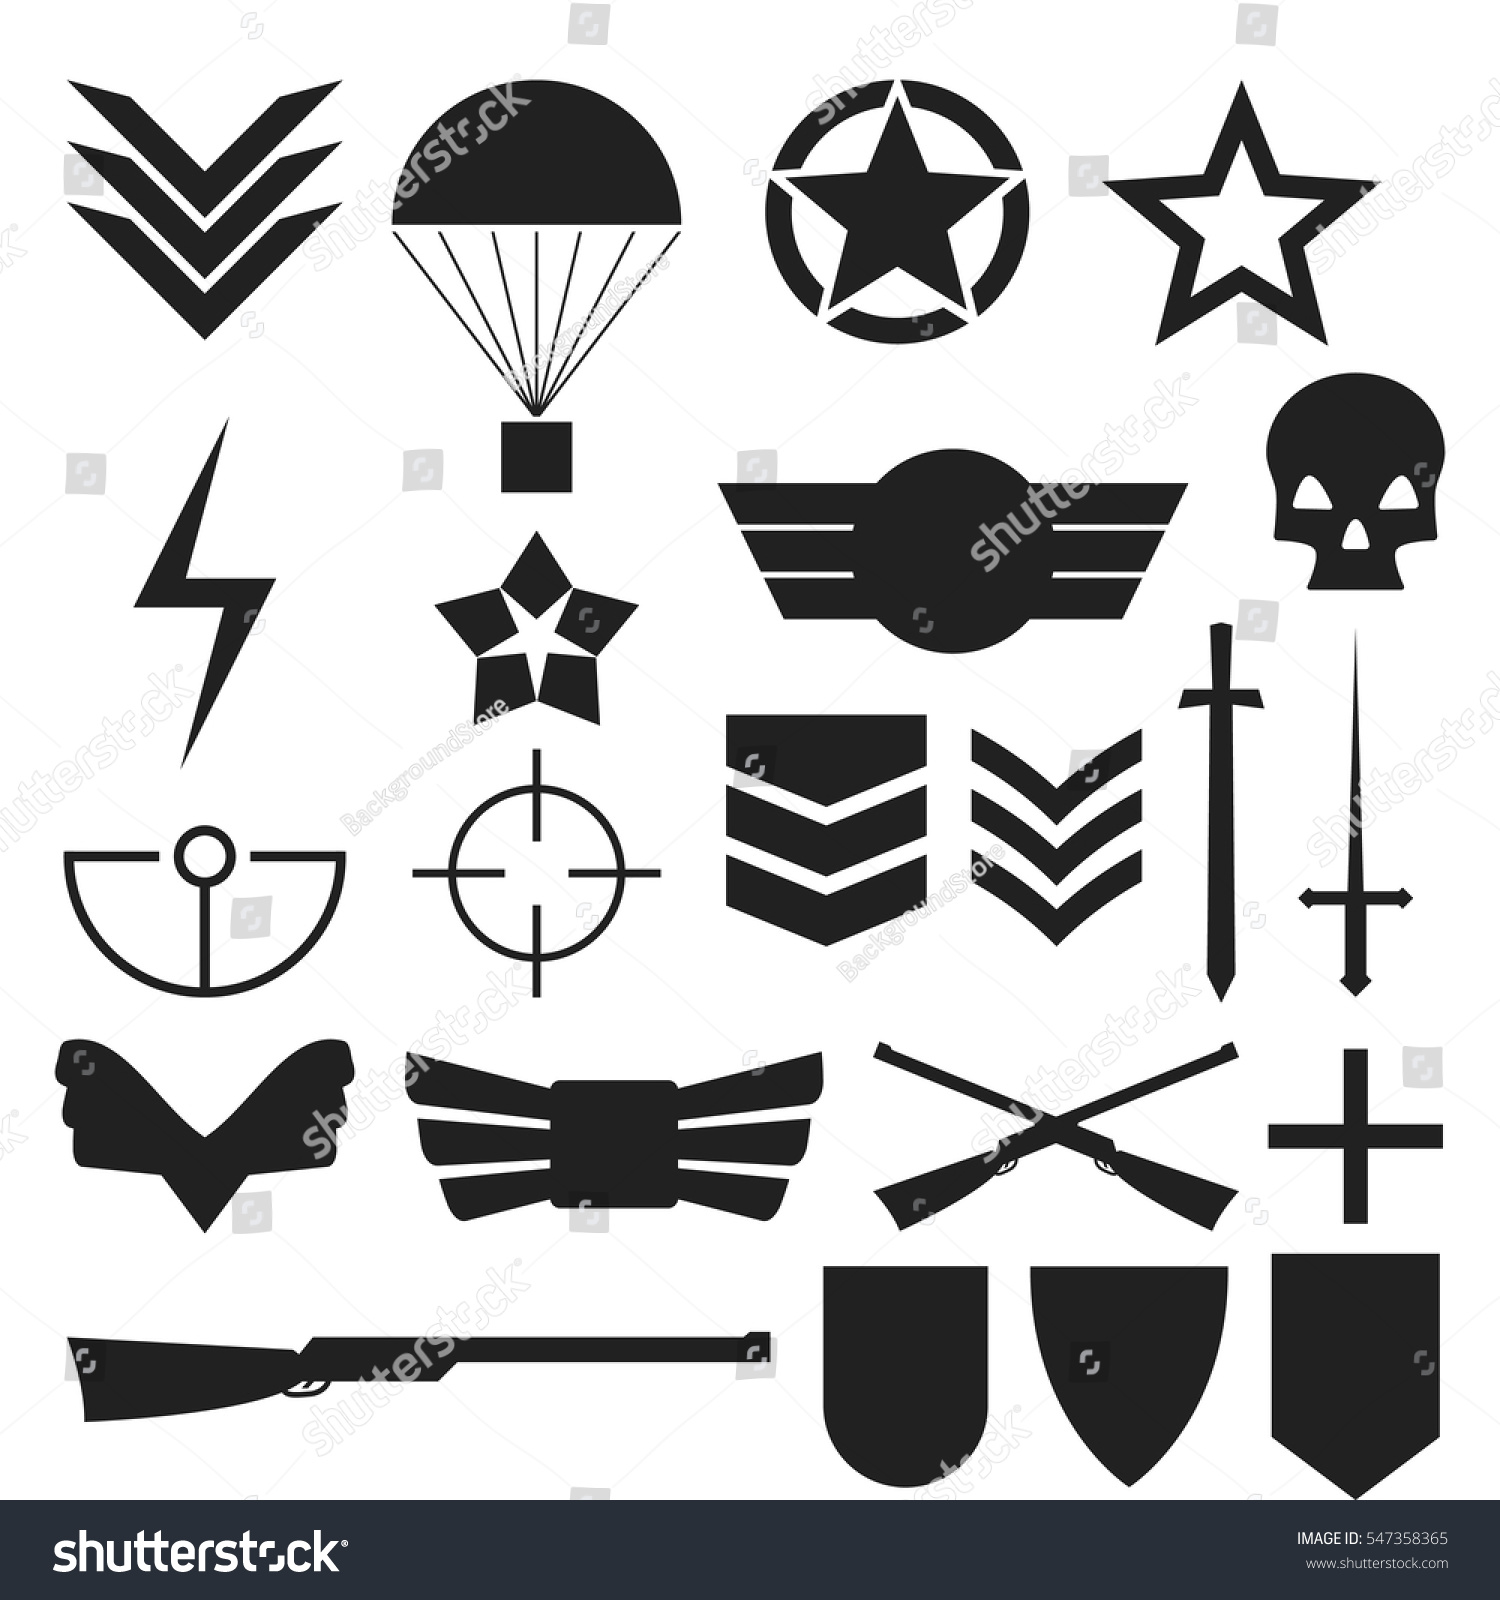 Military army like symbols black vectors stock vector 547358365 military army like symbols black vectors set buycottarizona Choice Image